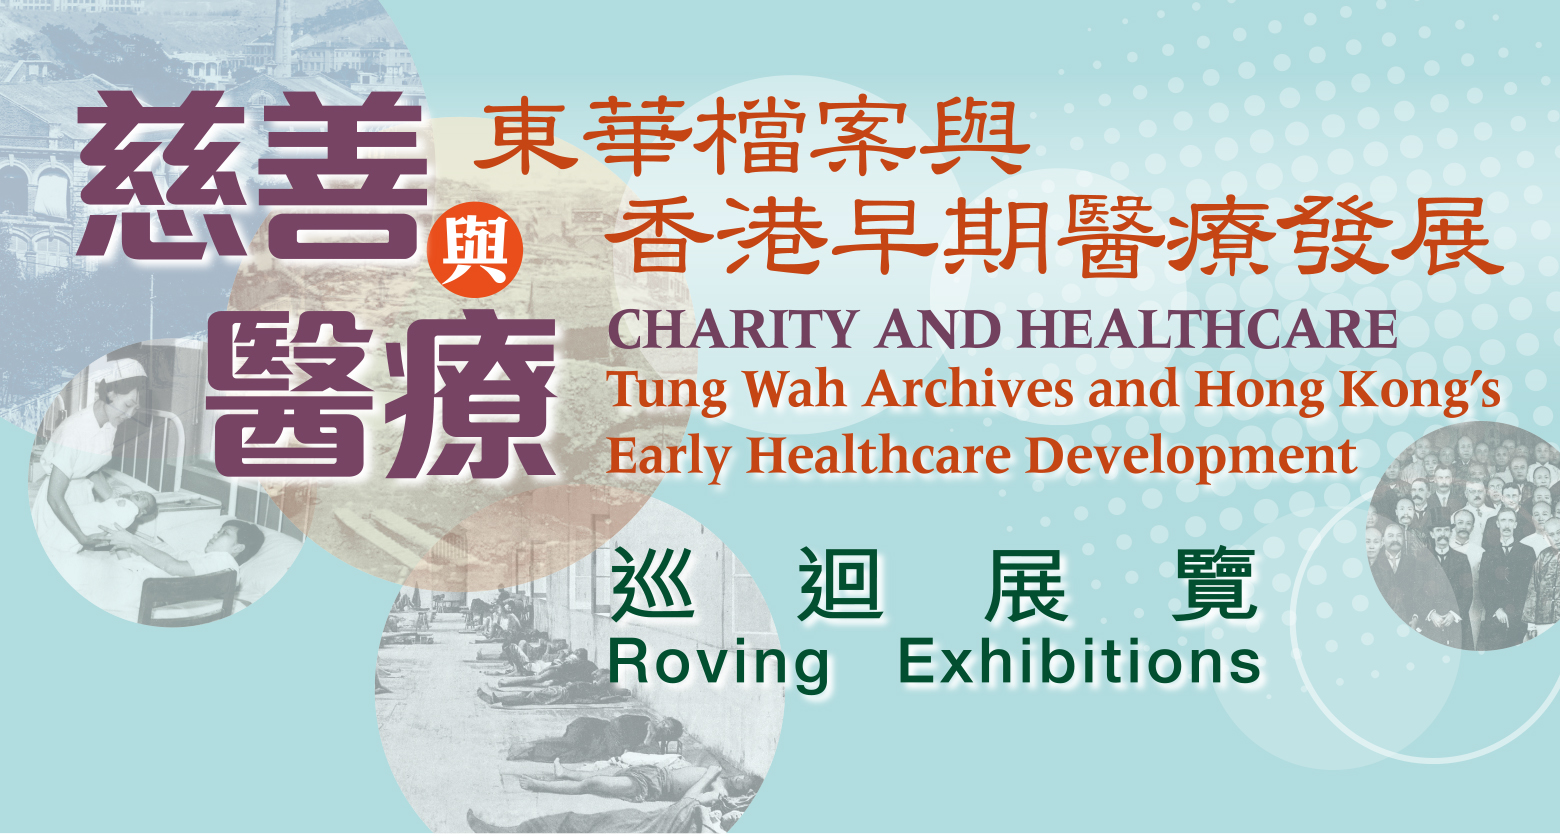 """Charity and Healthcare: Tung Wah Archives and Hong Kong's Early Healthcare Development"" Roving Exhibitions"